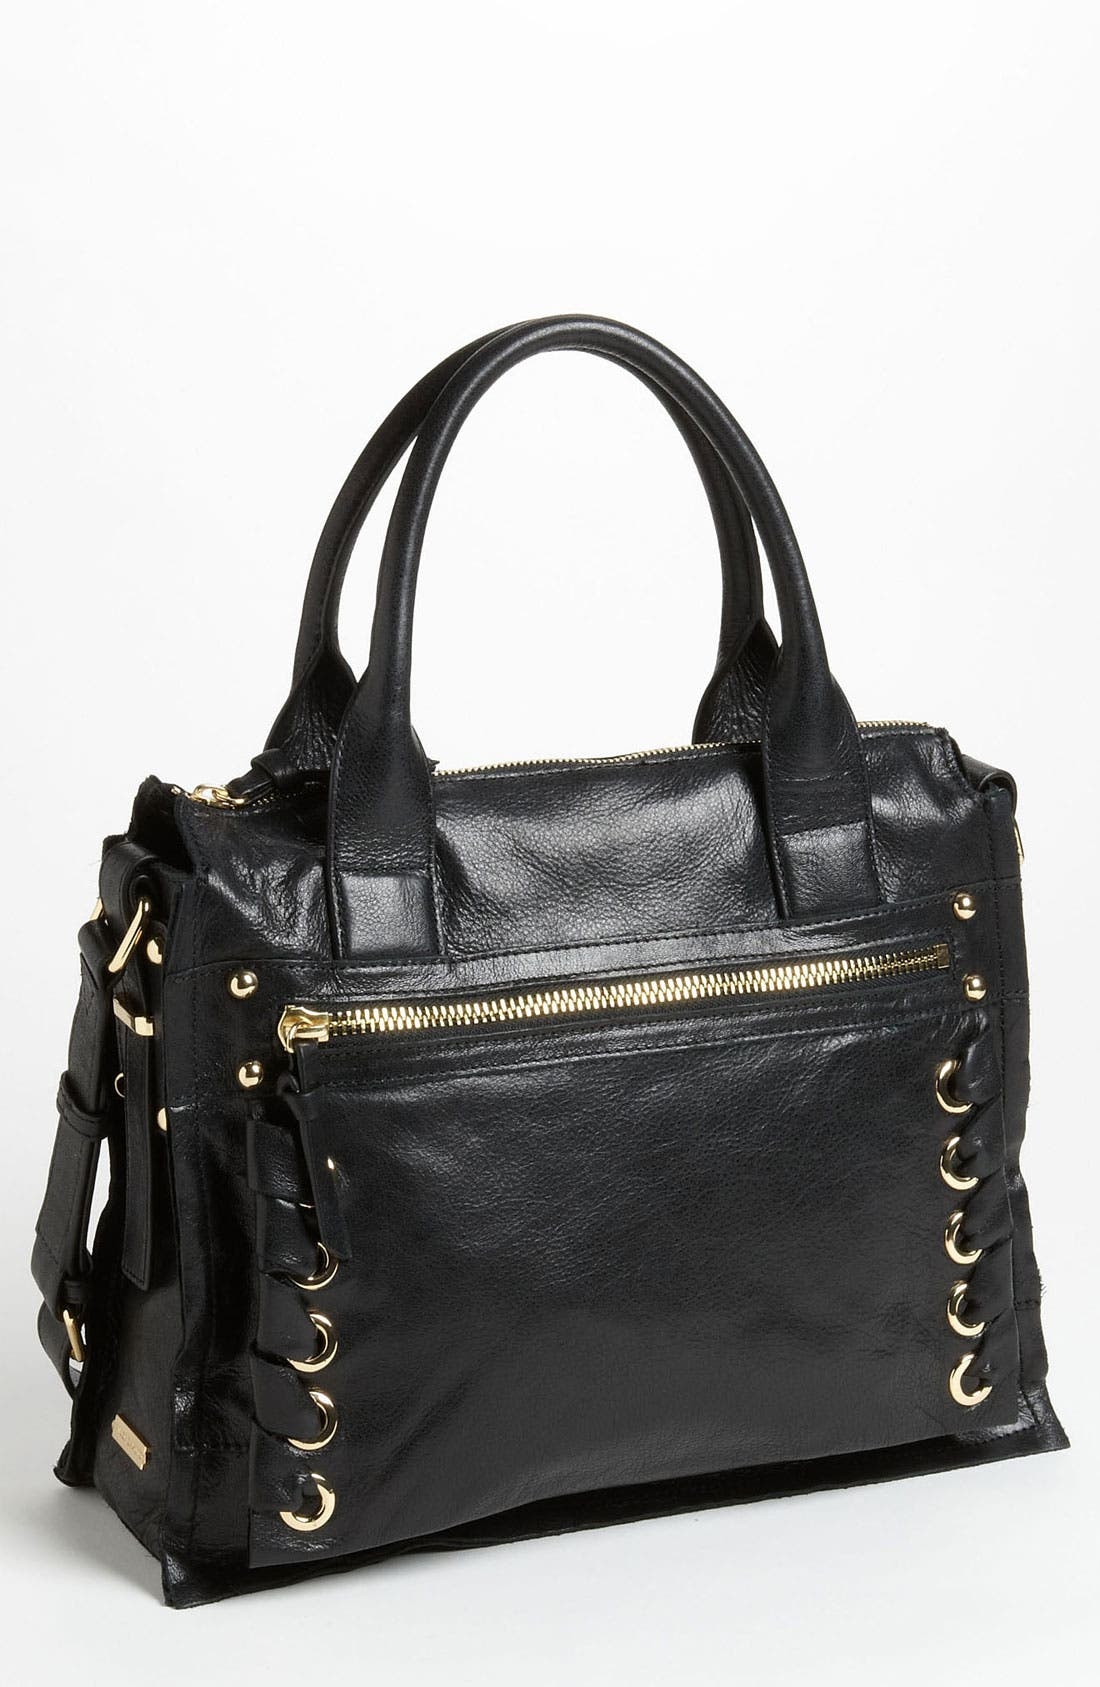 Main Image - Vince Camuto 'Mica' Satchel